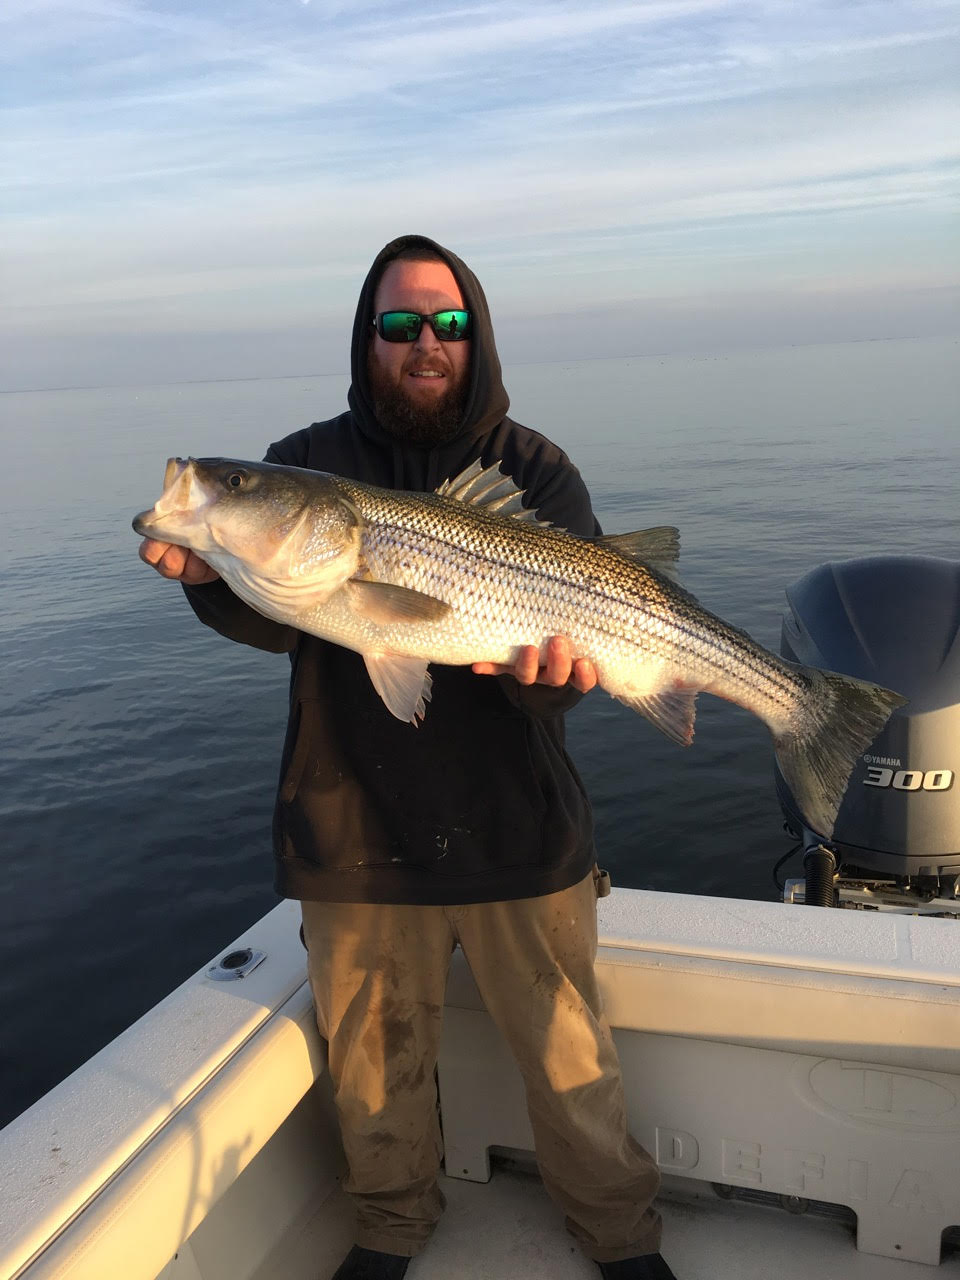 Fishing with Nick Fulford on Nick's boat  Defiance , Chris Lankford, Seaford DE, jigged up this fine rockfish near Hooper's Straits on Sunday. (Photo courtesy of Nick Fulford)